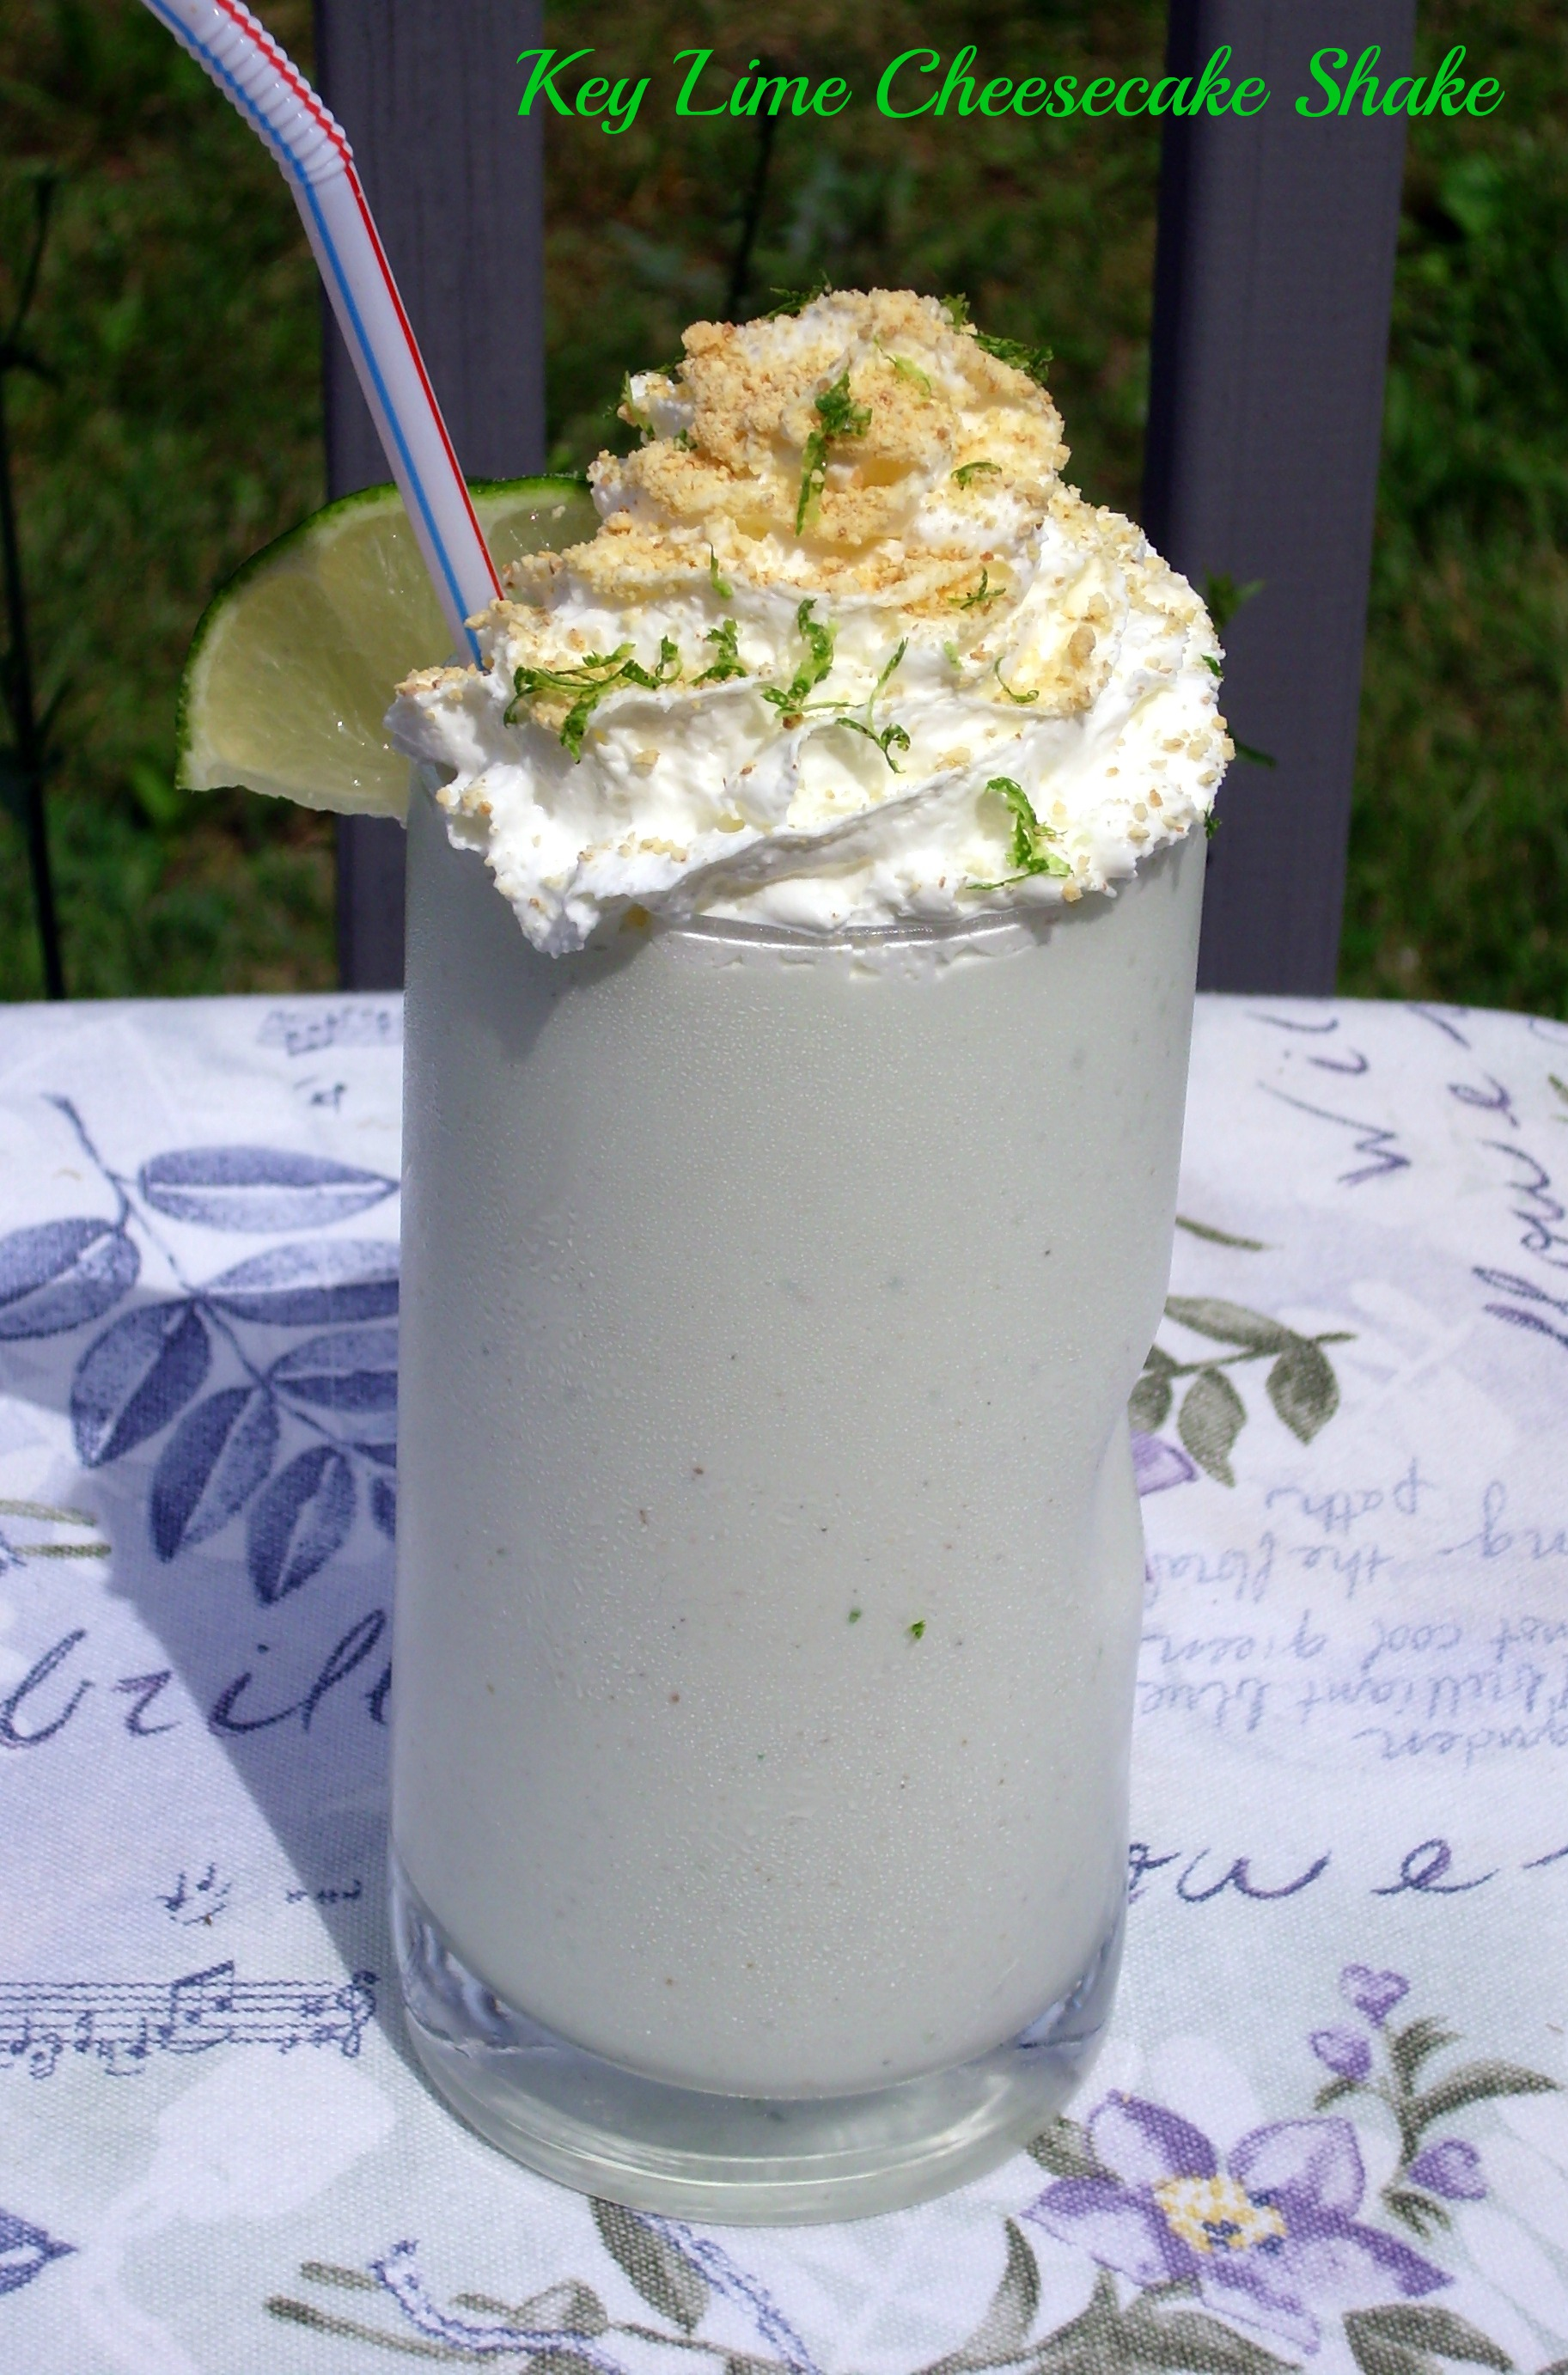 Key Lime Cheesecake Shake